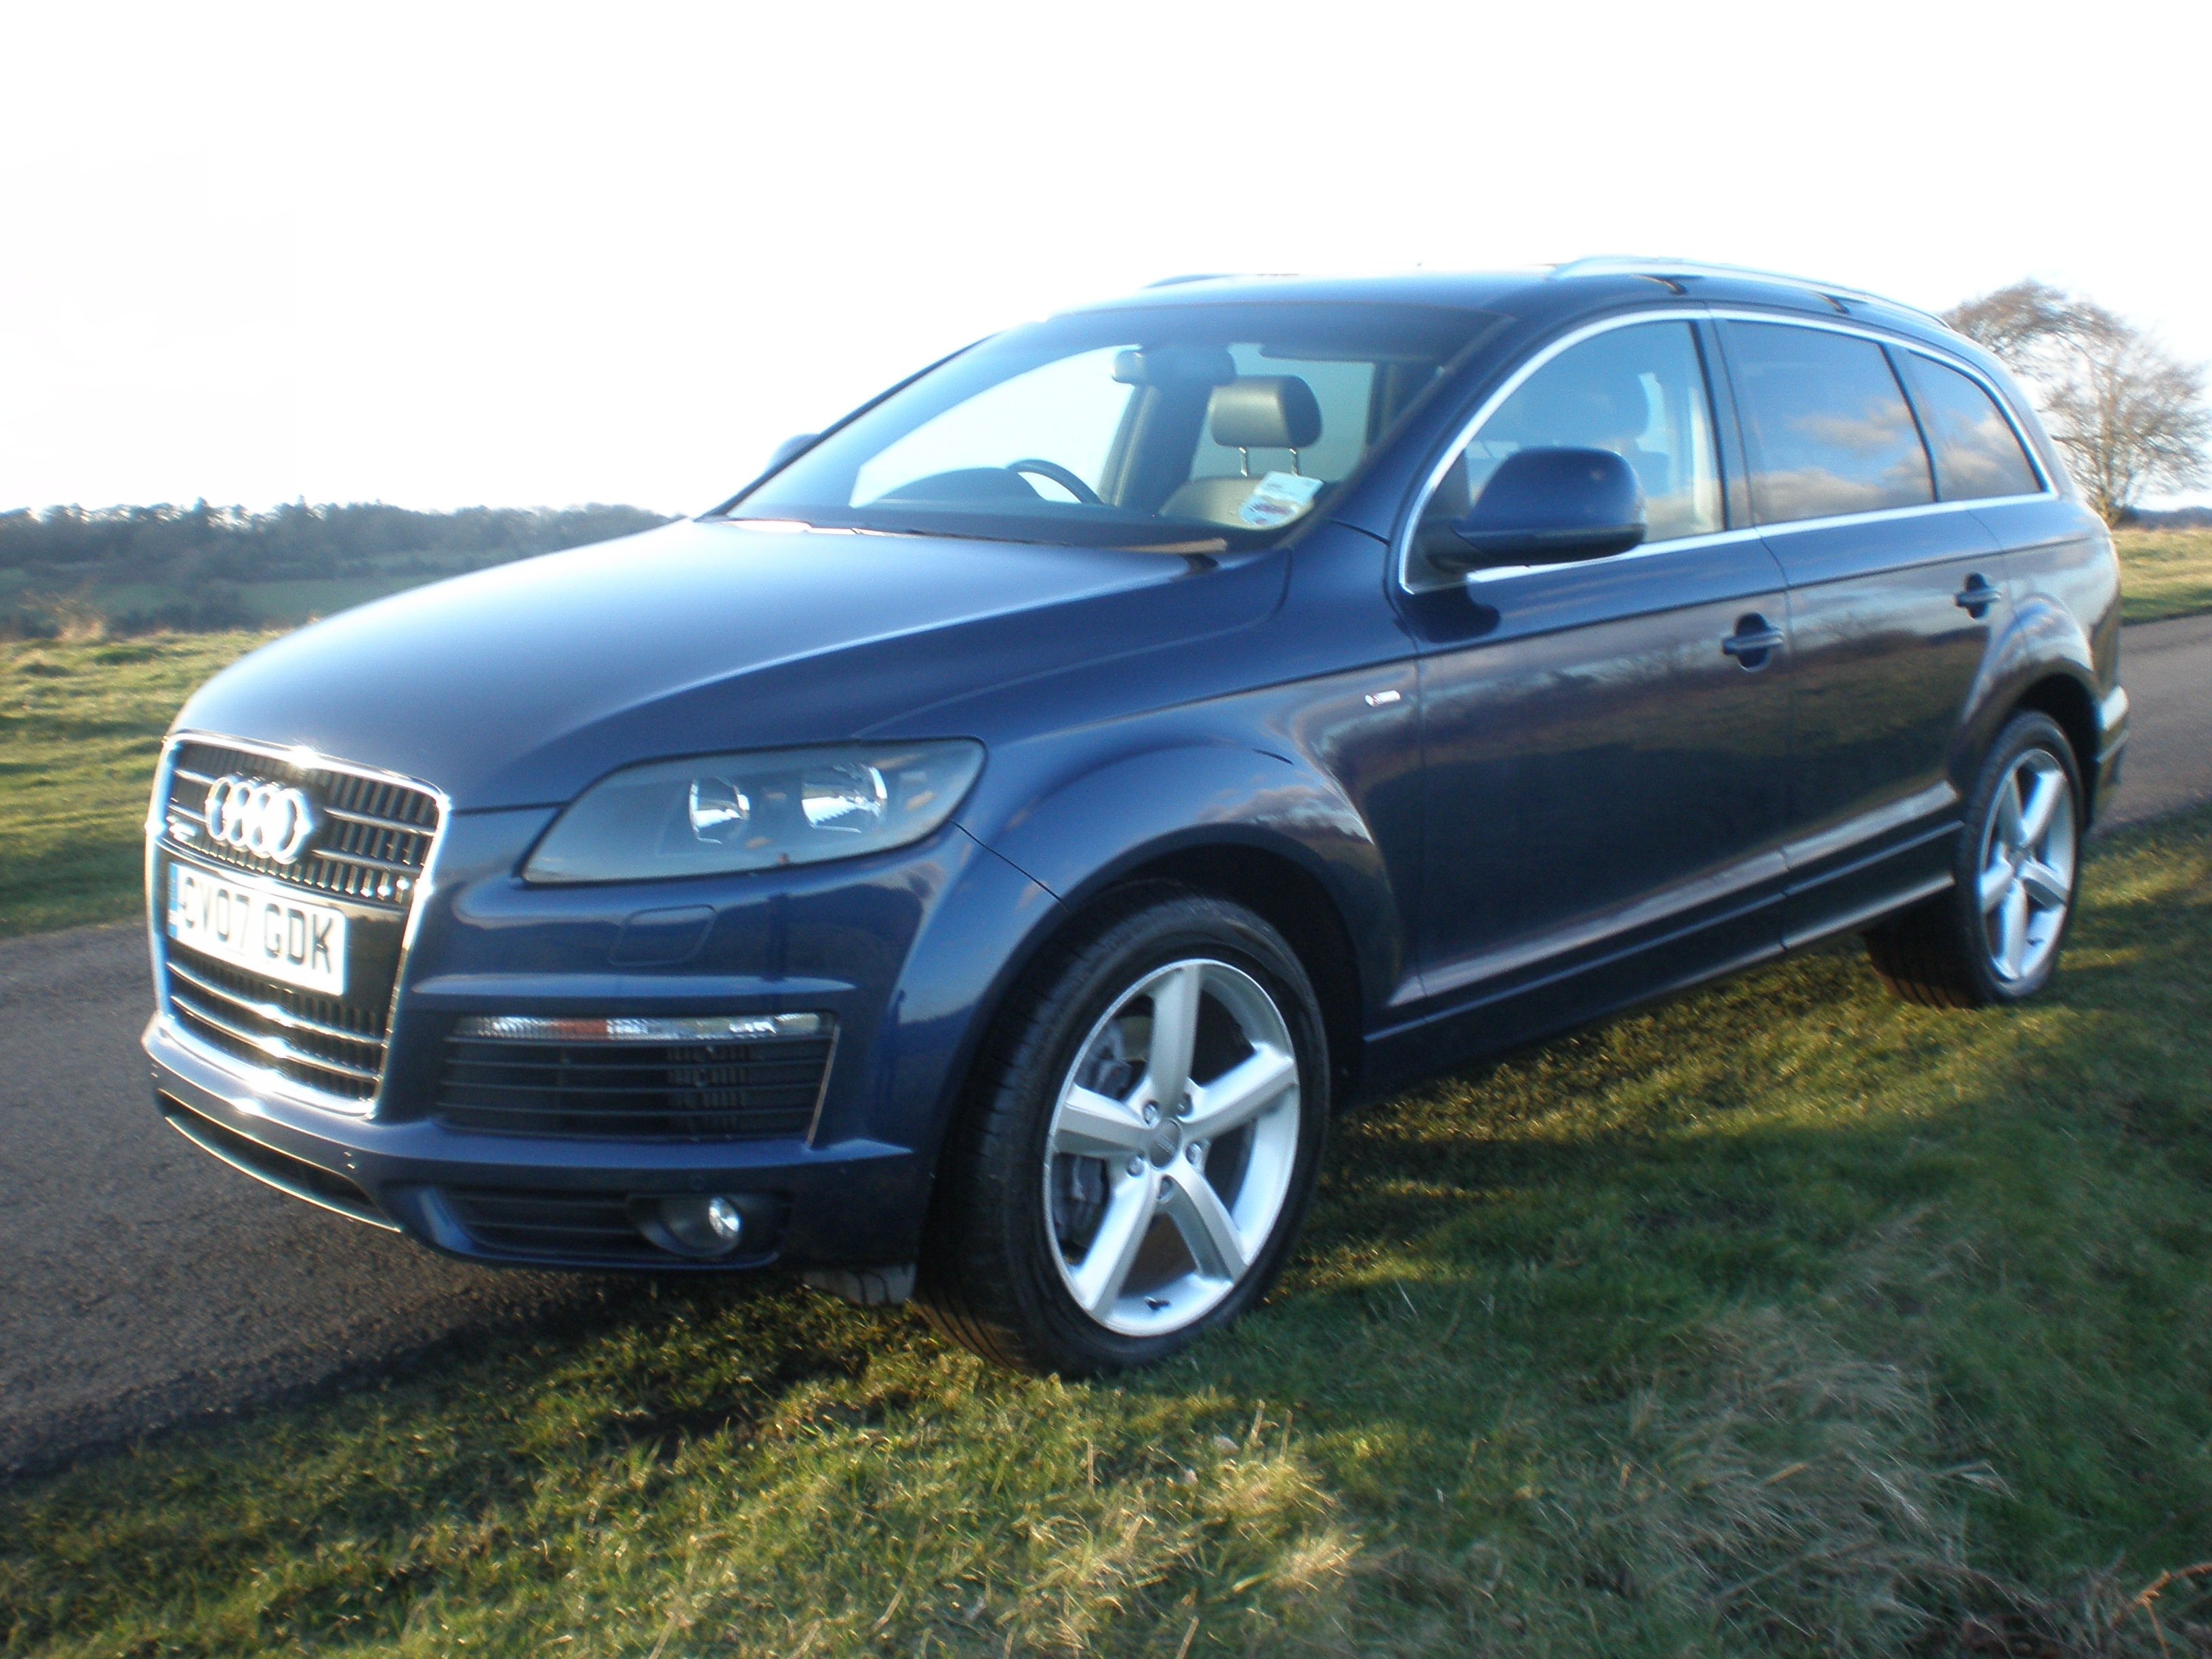 Cars4youdirect Audi Q7 3 0 Tdi S Line Automatic Sat